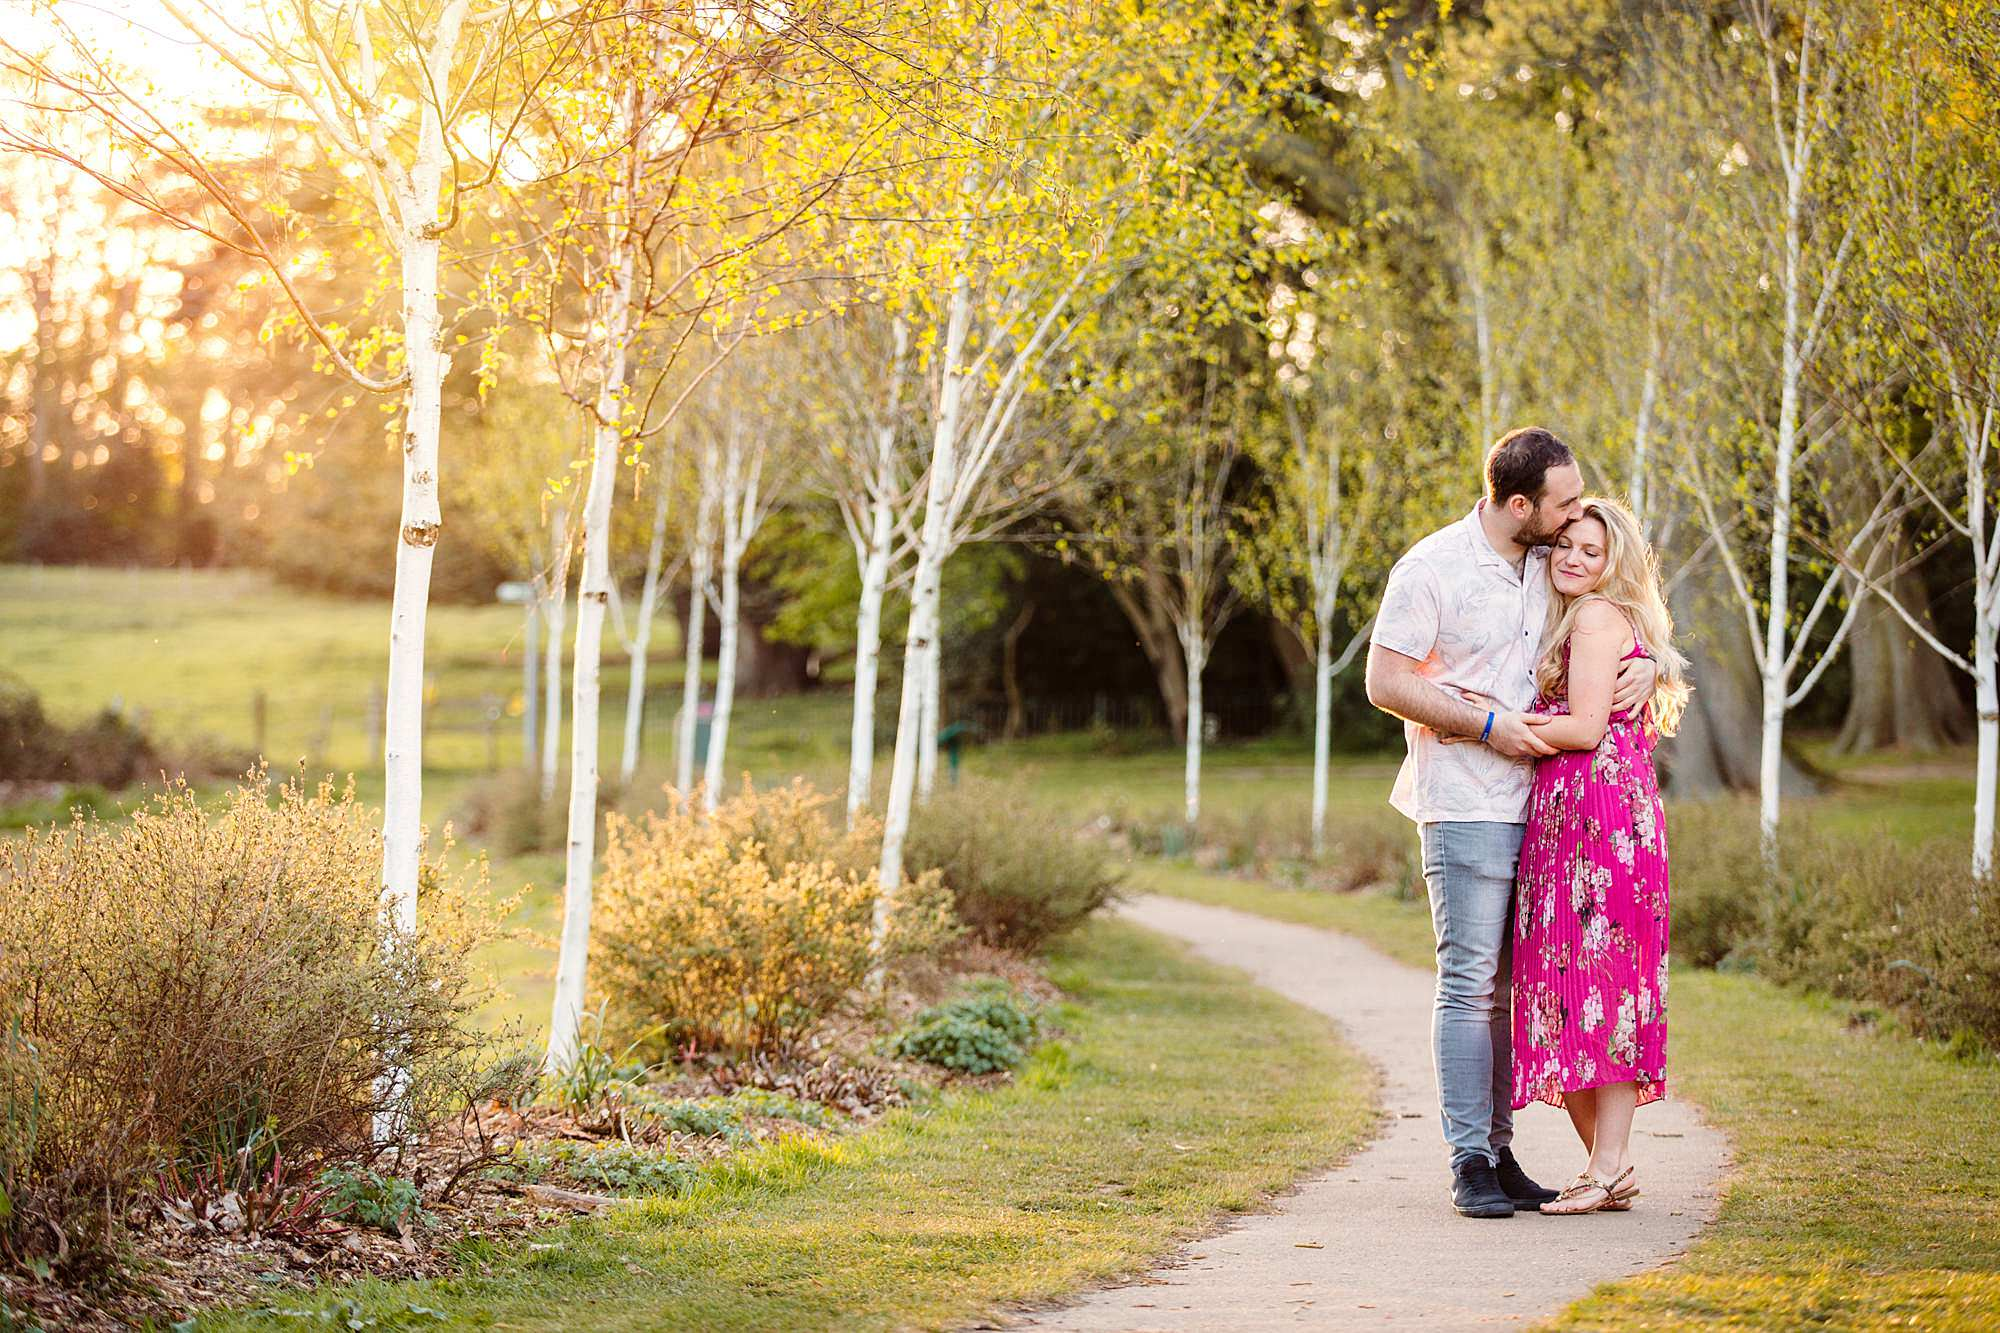 Summer evening engagement shoot couple cuddle together on pathway